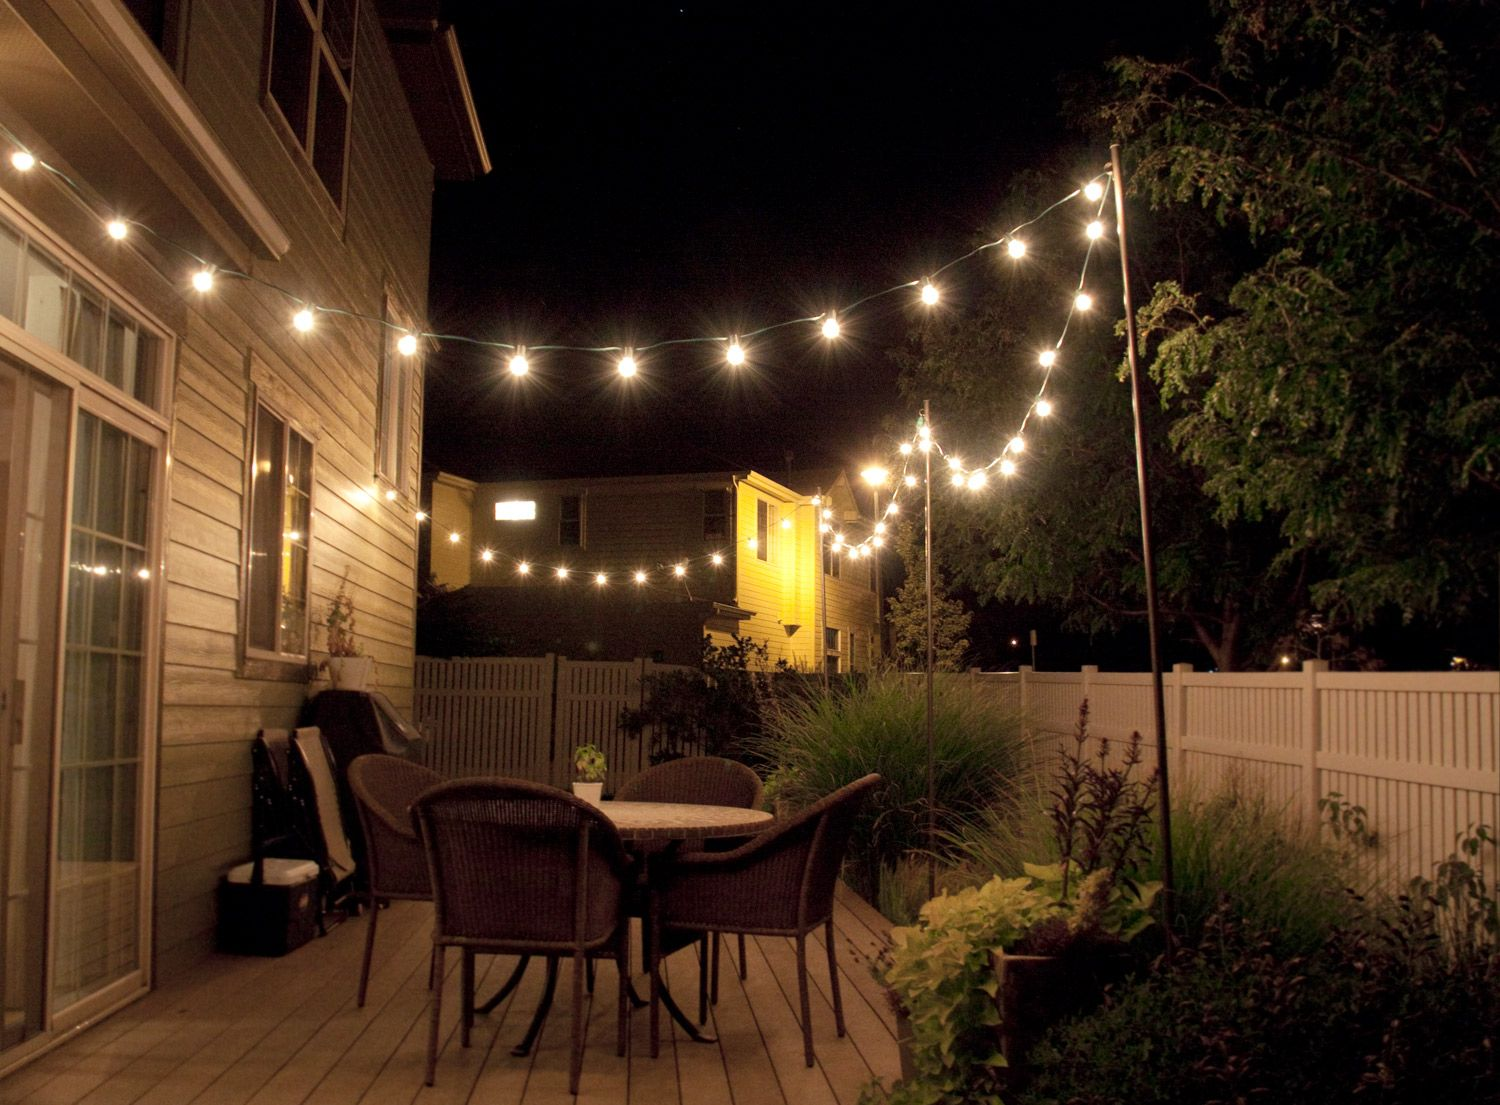 how to make inexpensive poles hang string lights on caf style via bright cafe lighting ideas t